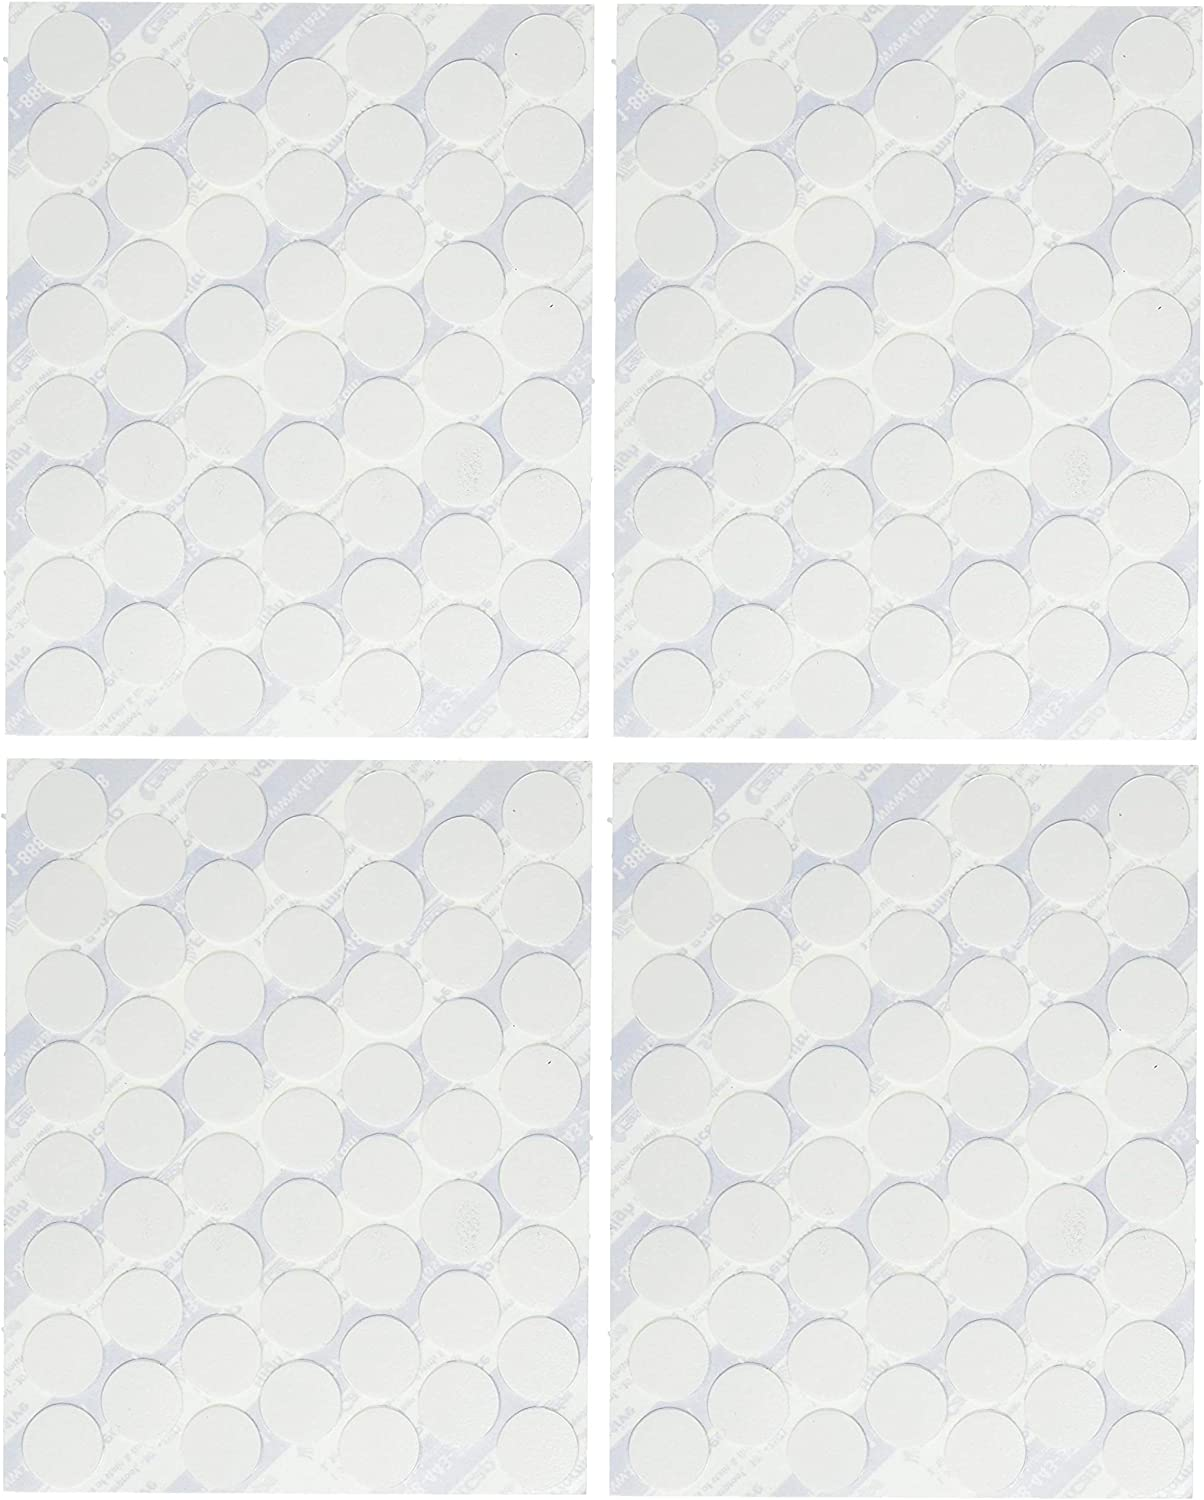 FastCap FC.SP.14MM.WH Adhesive Cover Caps PVC, White (Four Pack)